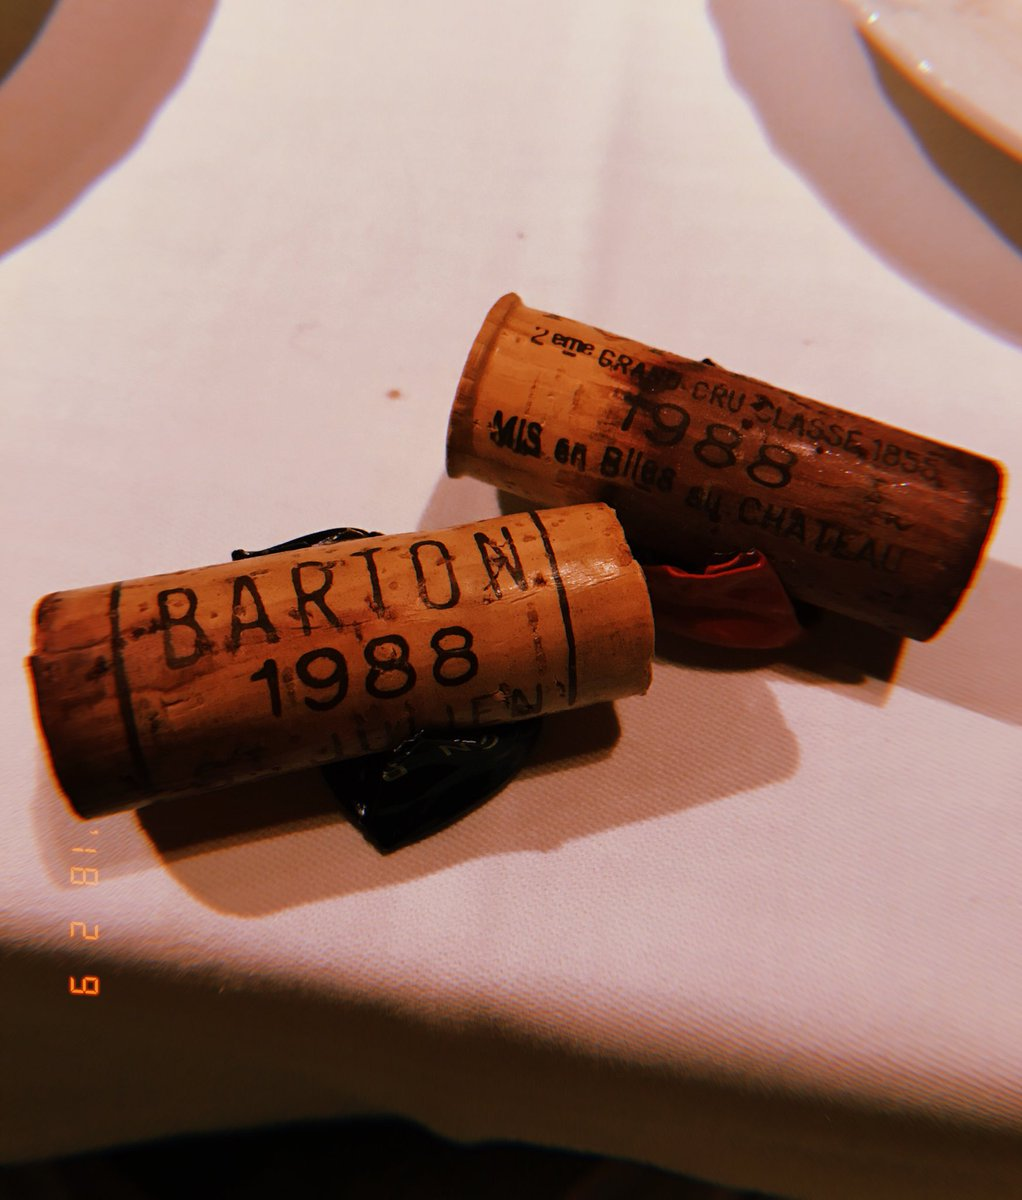 First time having 1988 vintage. Now I understand what it means to age like wine. https://t.co/Y89C4b6SF3